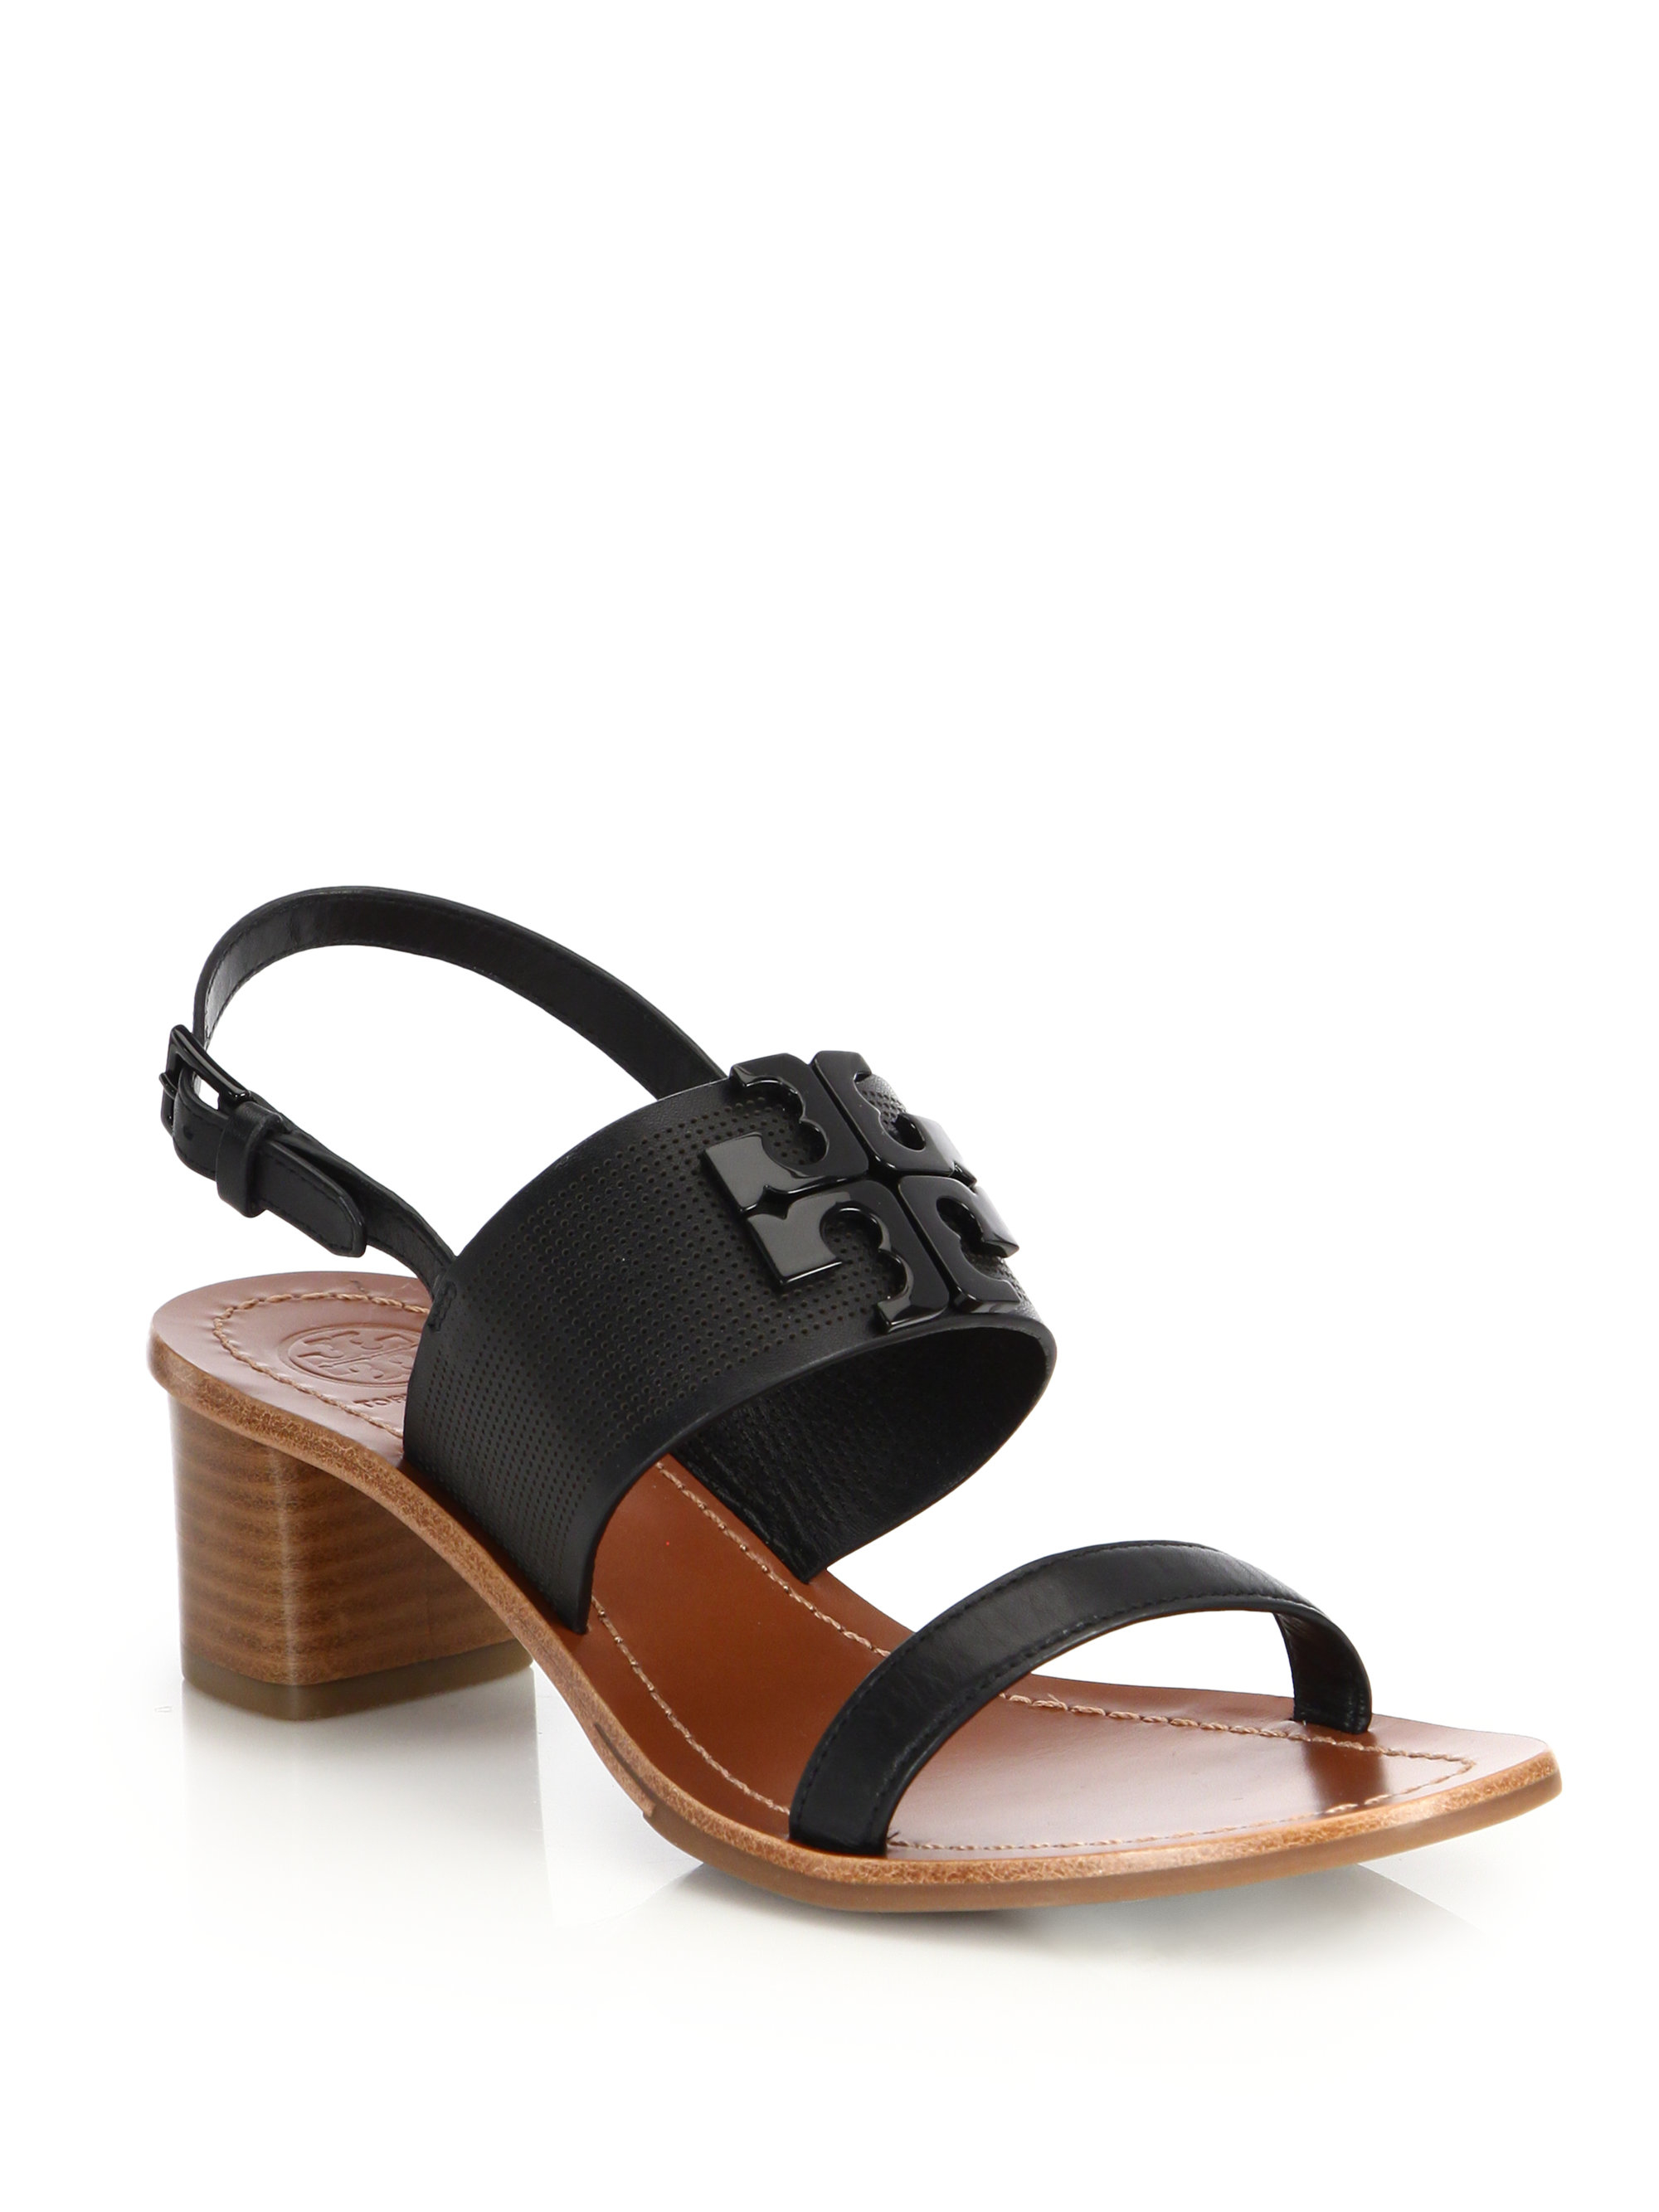 f40ad0aa5ab608 Lyst - Tory Burch Lowell Perforated Sandal in Black